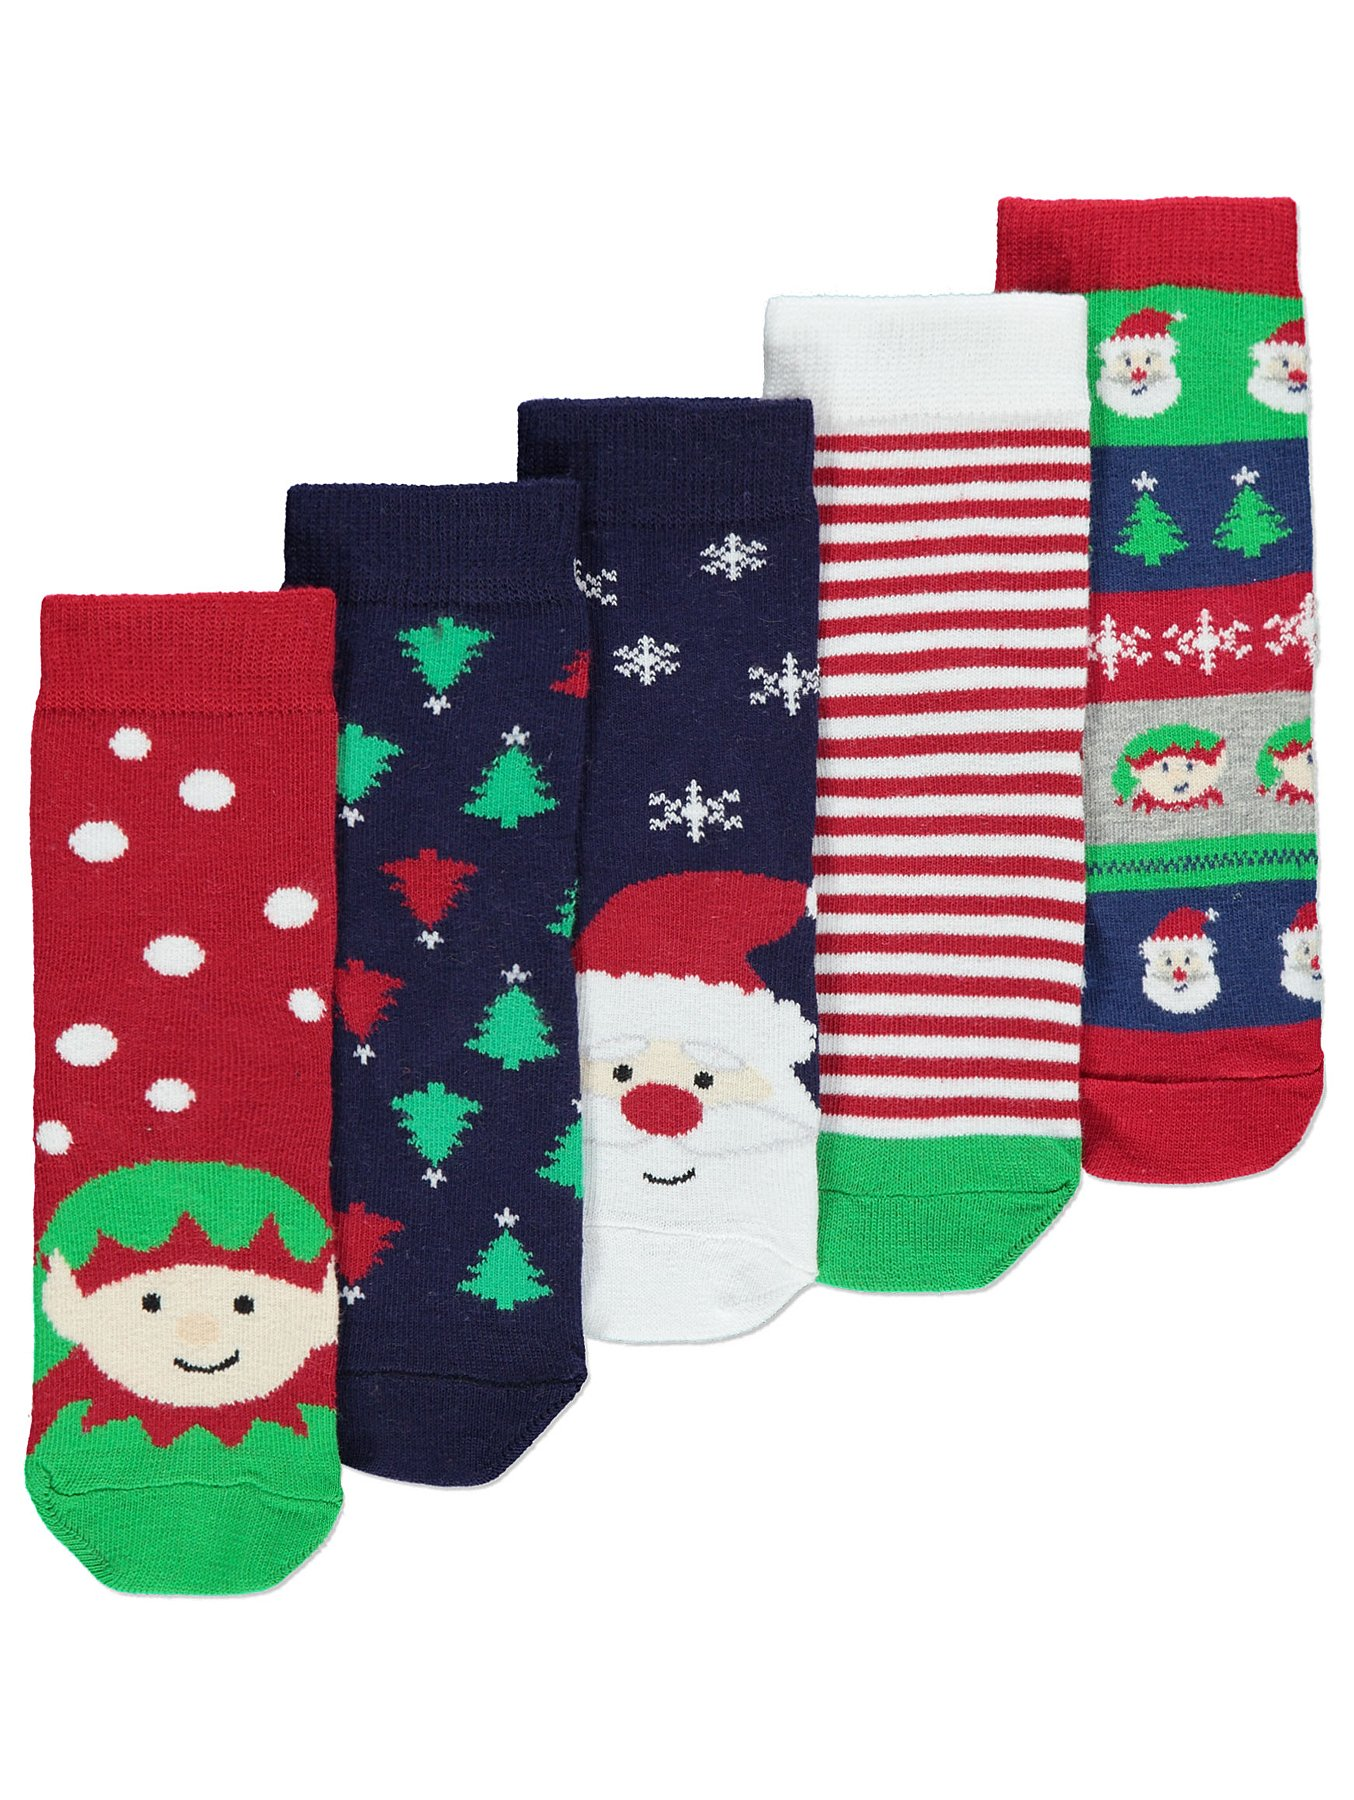 Christmas Socks 5 Pack